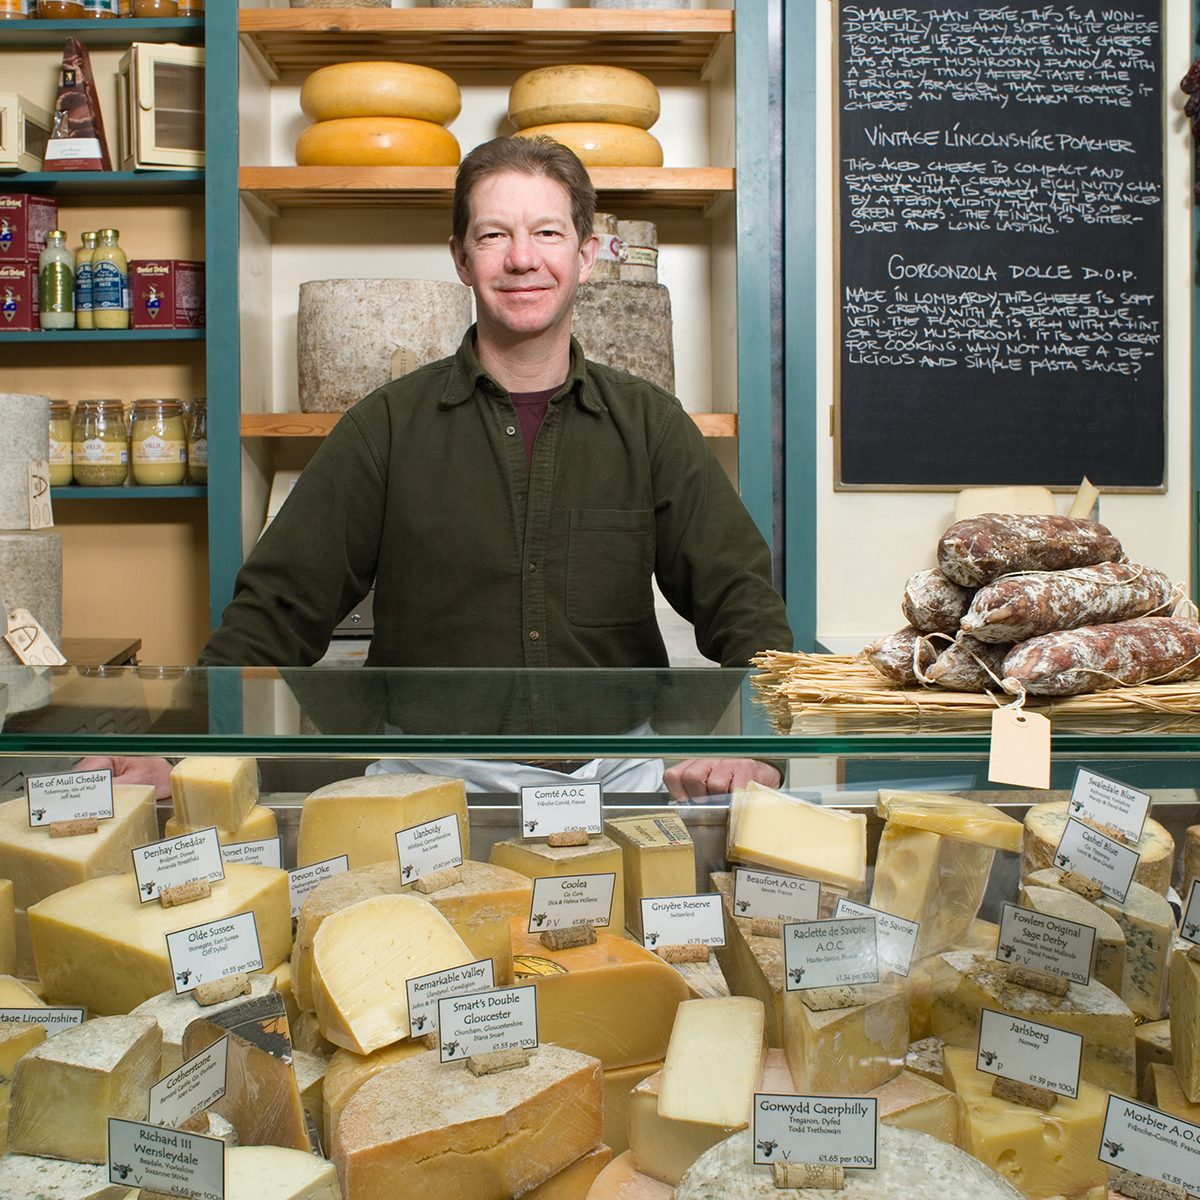 Portrait of a cheesemonger